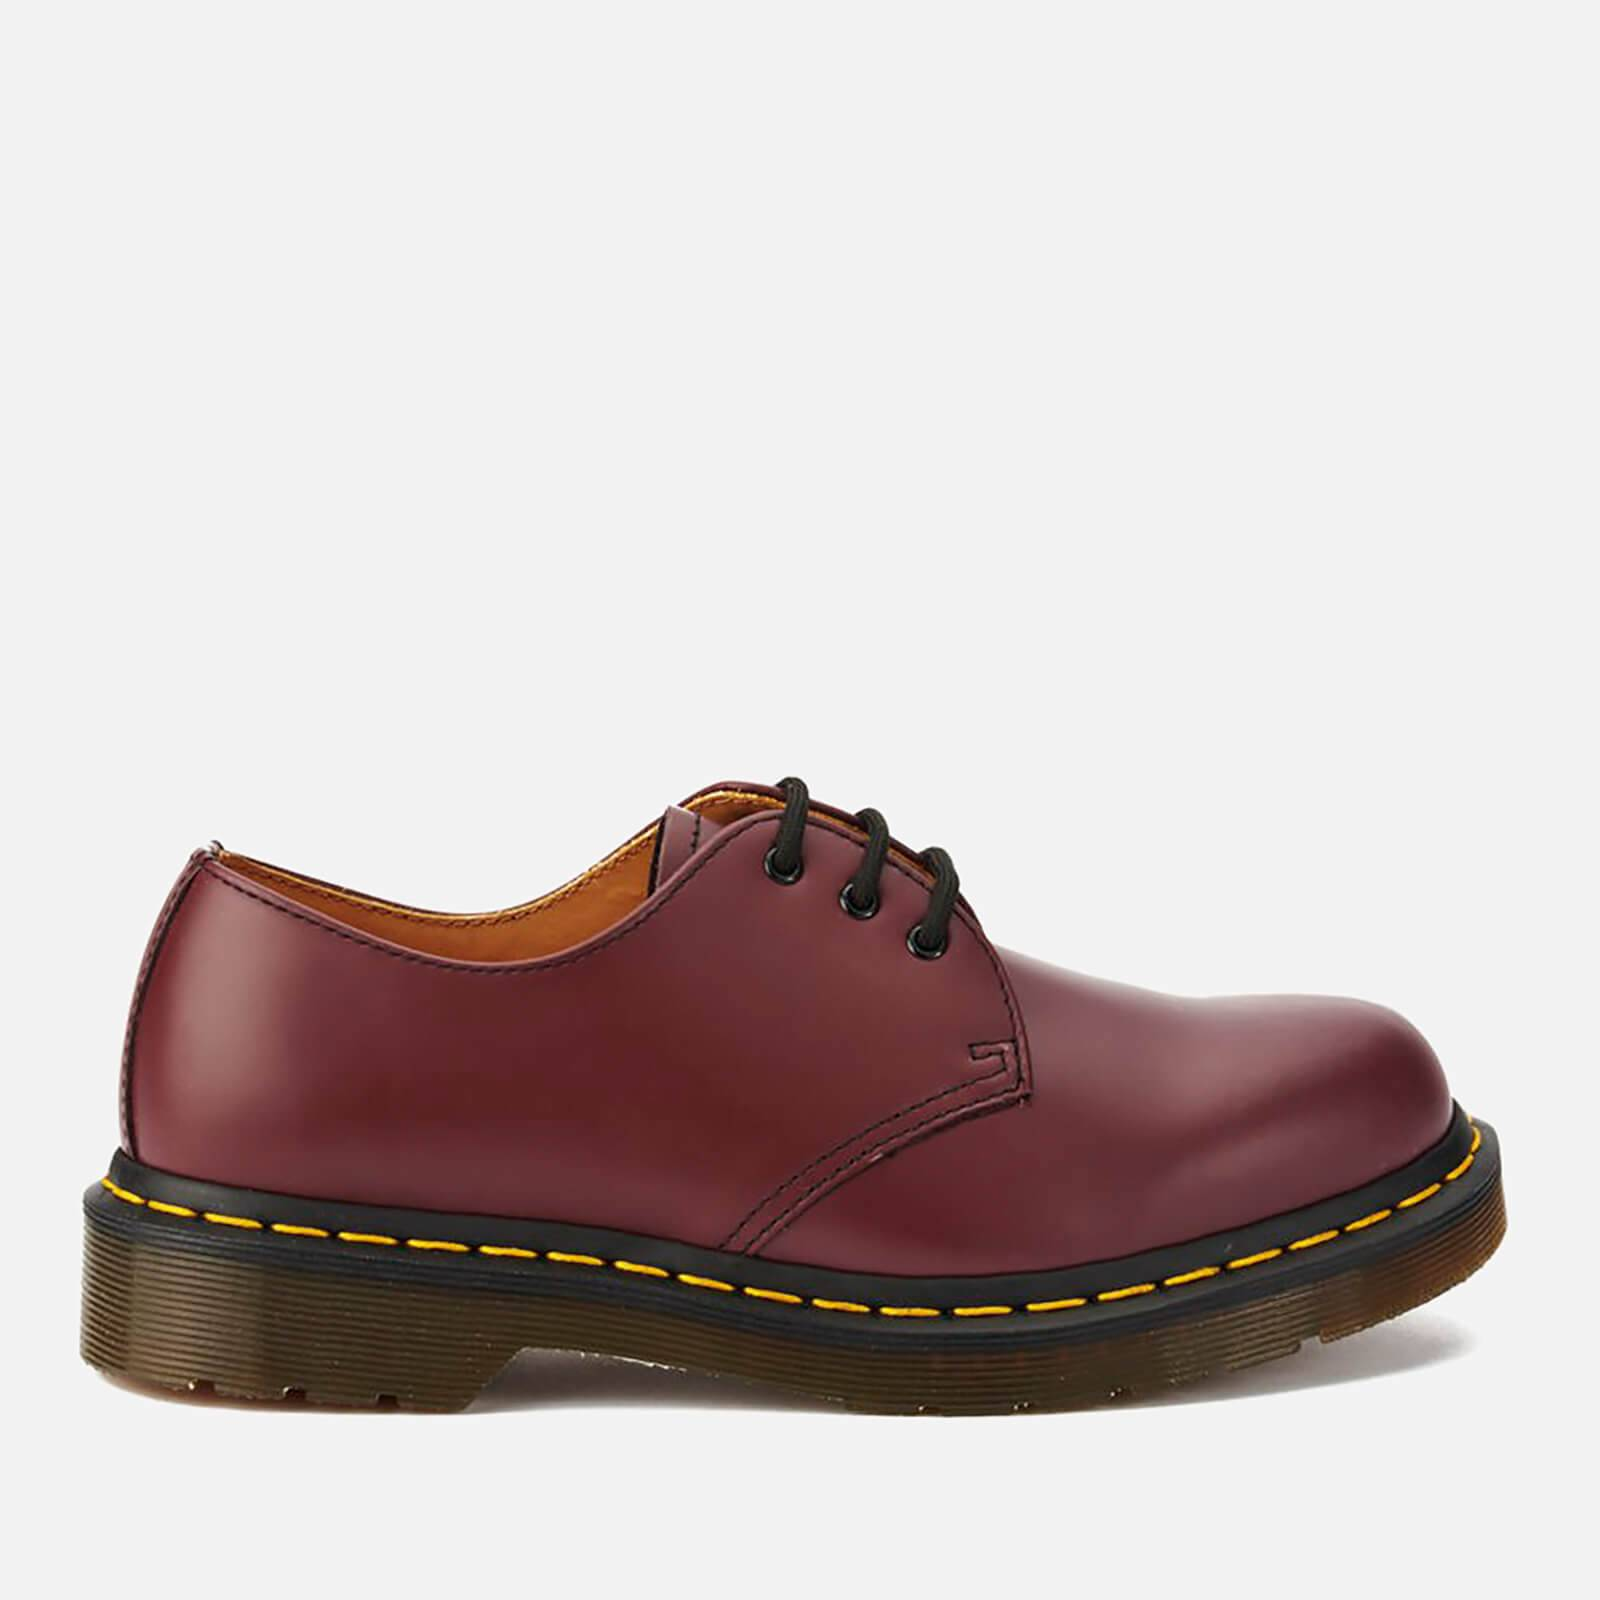 Dr. Martens 1461 Smooth Leather 3-Eye Shoes - Cherry Red - UK 6